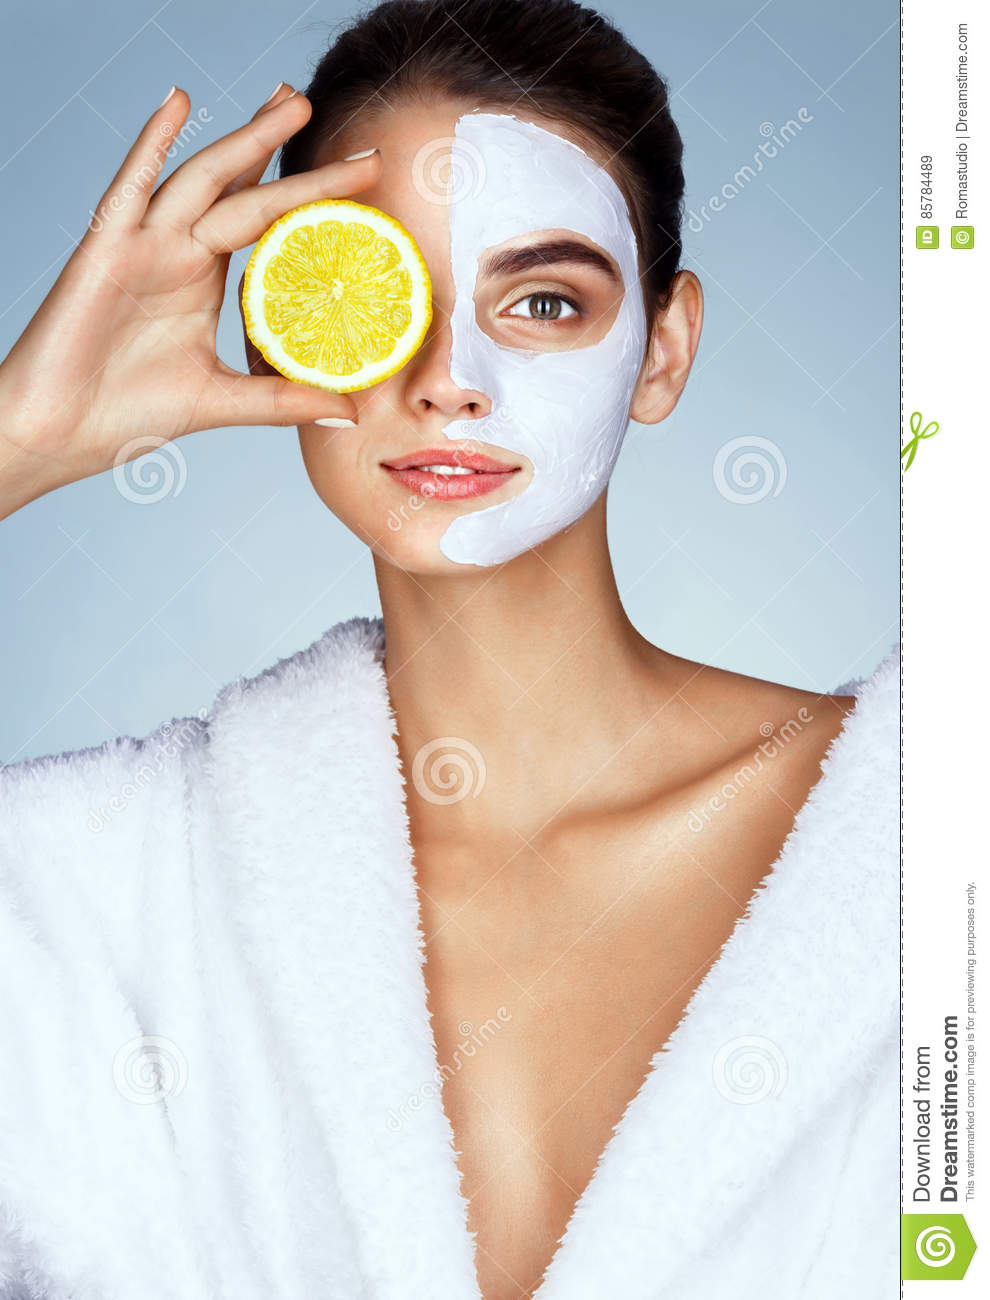 Lovely girl holding a slice of lemon in front of her face and smiling.